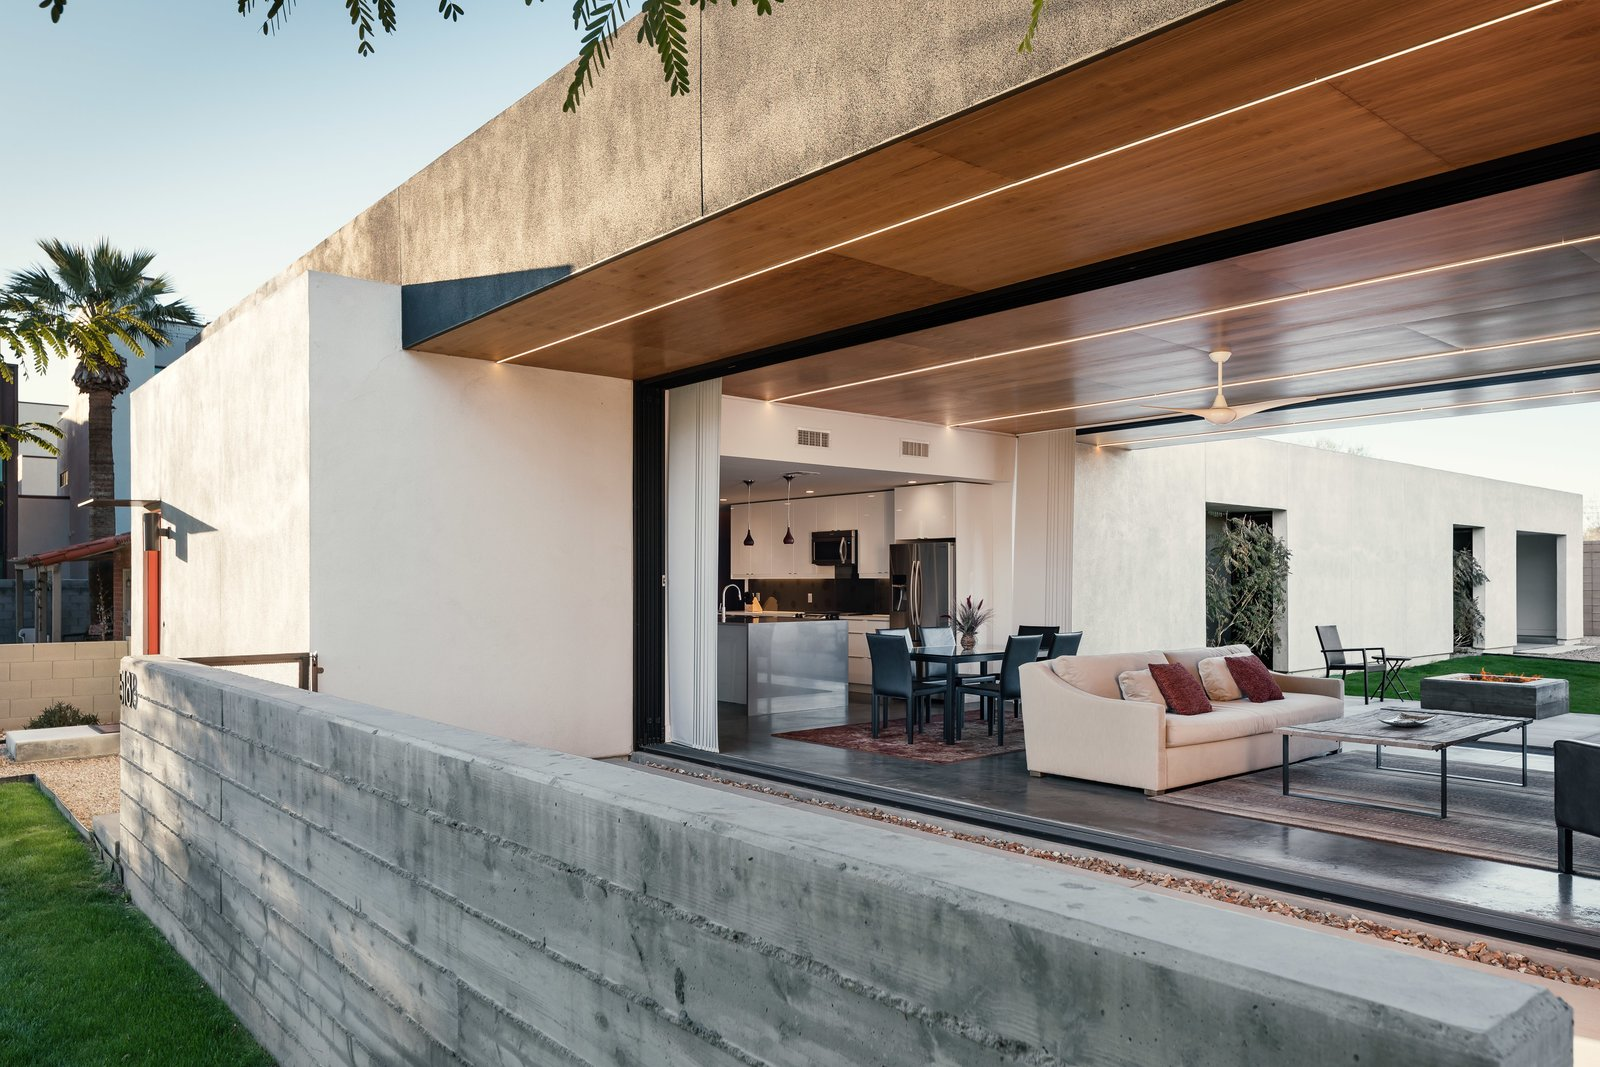 A board formed concrete wall creates a solid barrier off of the open living space to allow the homeowner to feel safe yet open to the community Tagged: Trees, Front Yard, Grass, Ceiling Lighting, Concrete Floor, Concrete Patio, Porch, Deck, and Outdoor.  Link House by The Ranch Mine